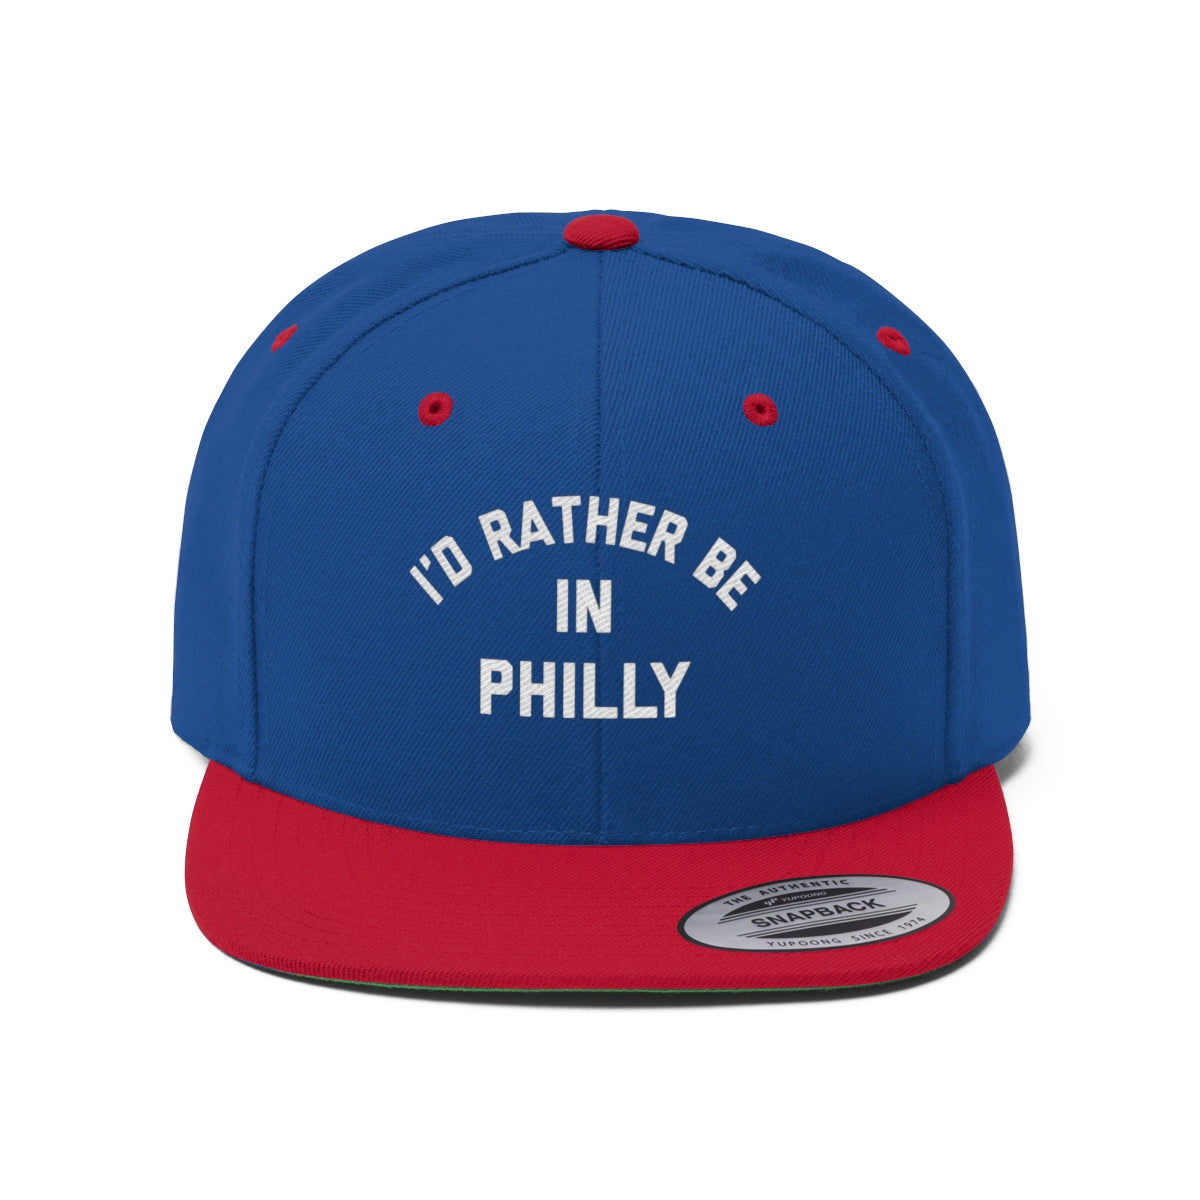 I'd Rather Be In Philly Unisex Flat Bill Hat